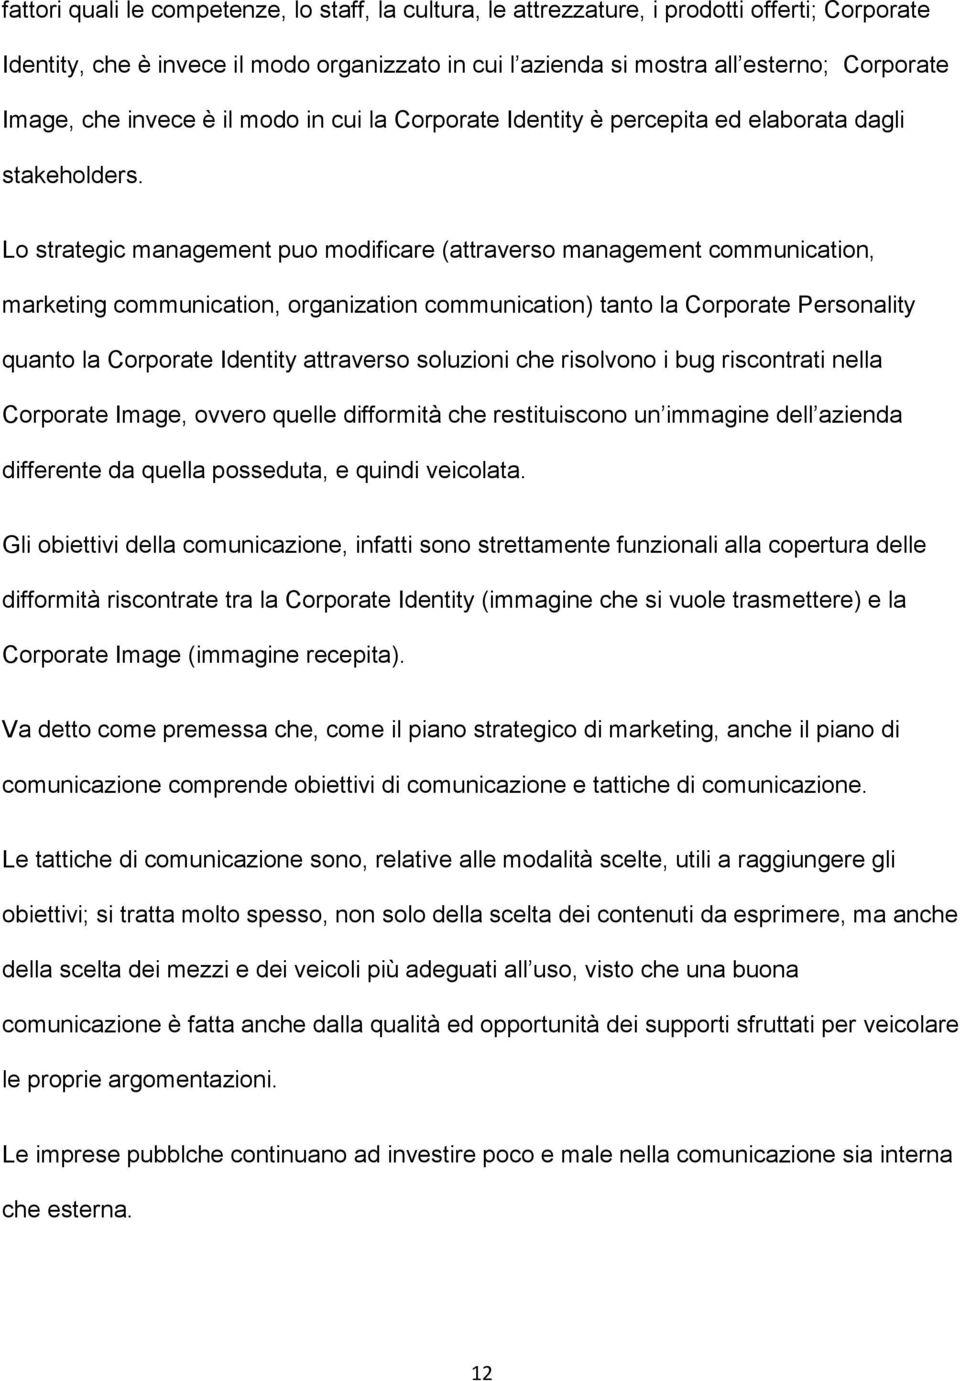 Lo strategic management puo modificare (attraverso management communication, marketing communication, organization communication) tanto la Corporate Personality quanto la Corporate Identity